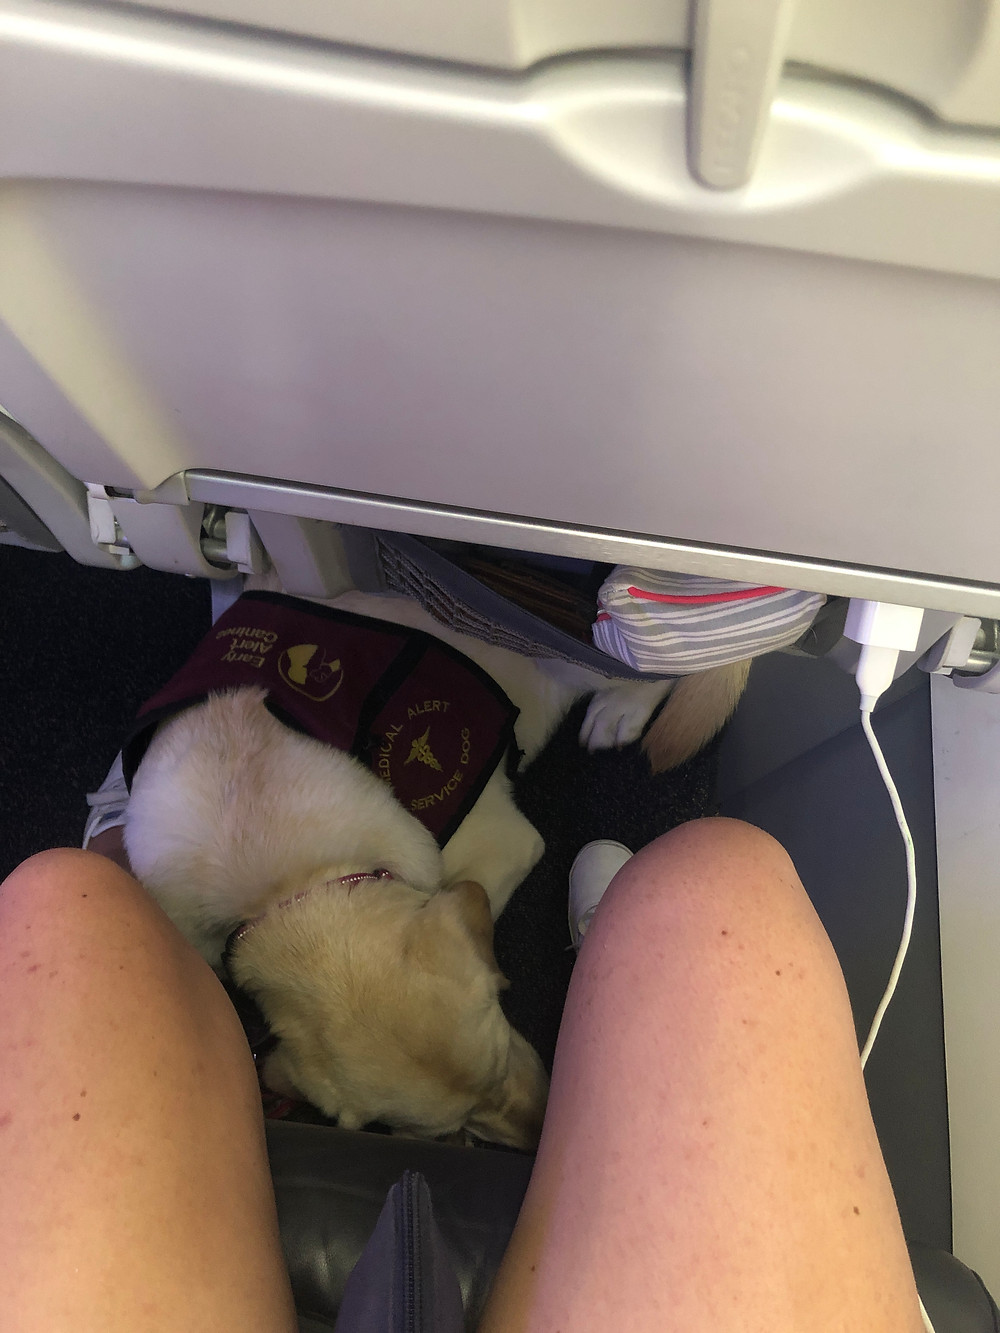 Ricki tucked under the seat in front of me on the plane ride back. She is squished in a little tighter and her head is down.